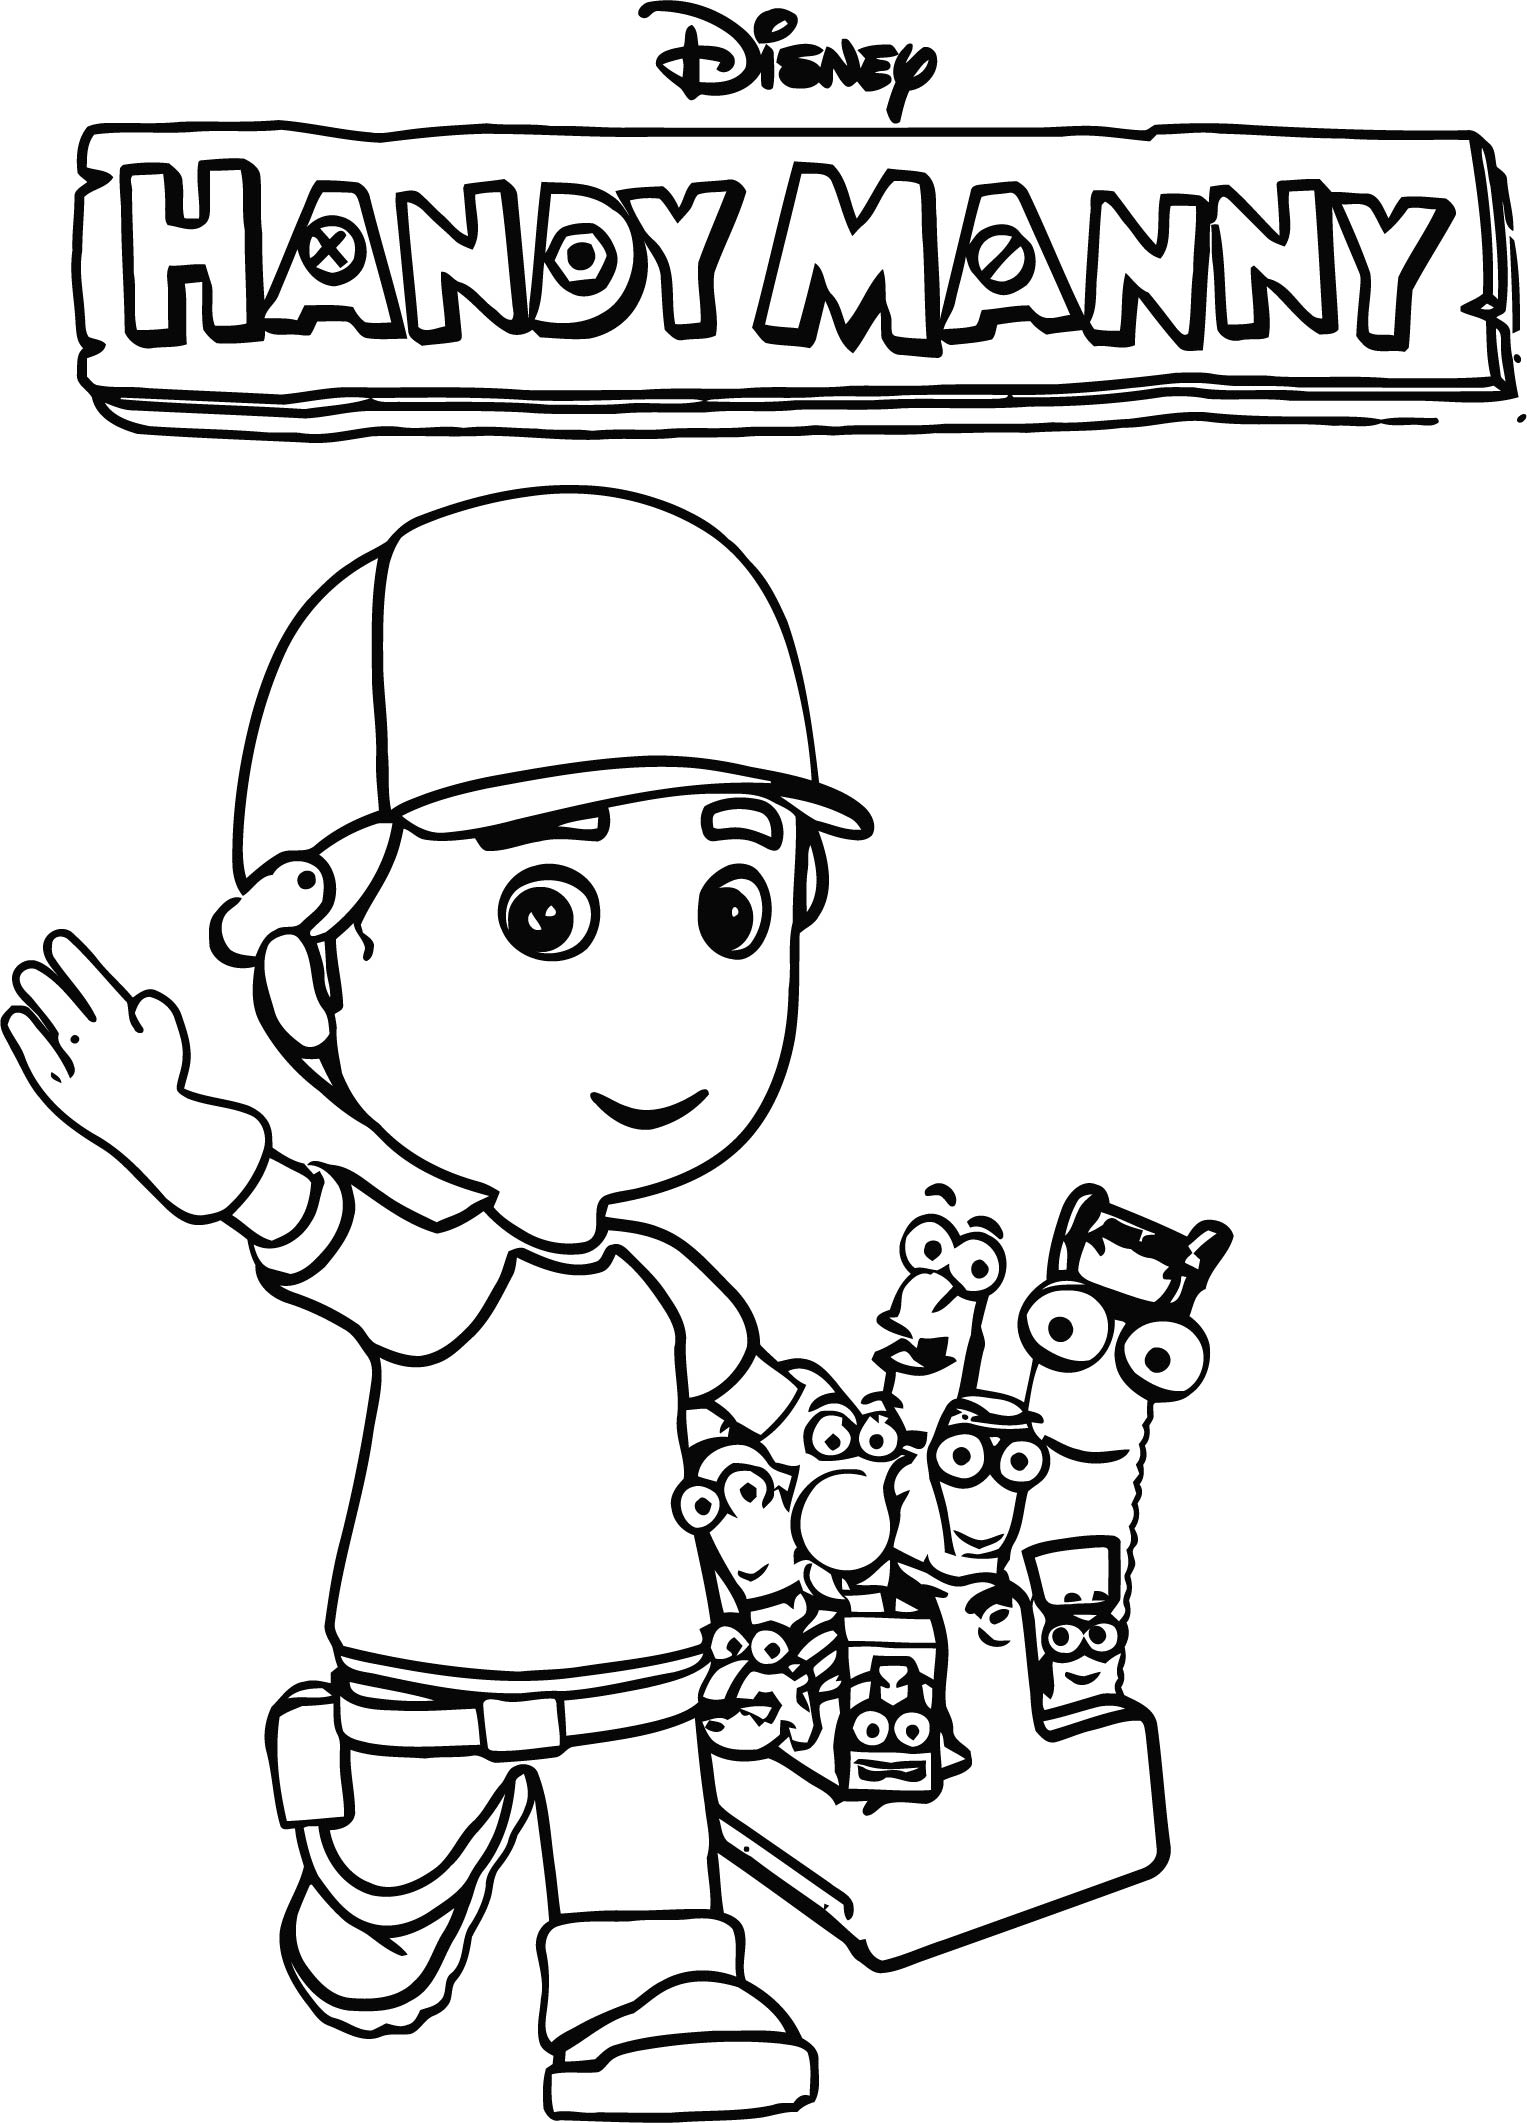 Handy Manny Coloring Page 03